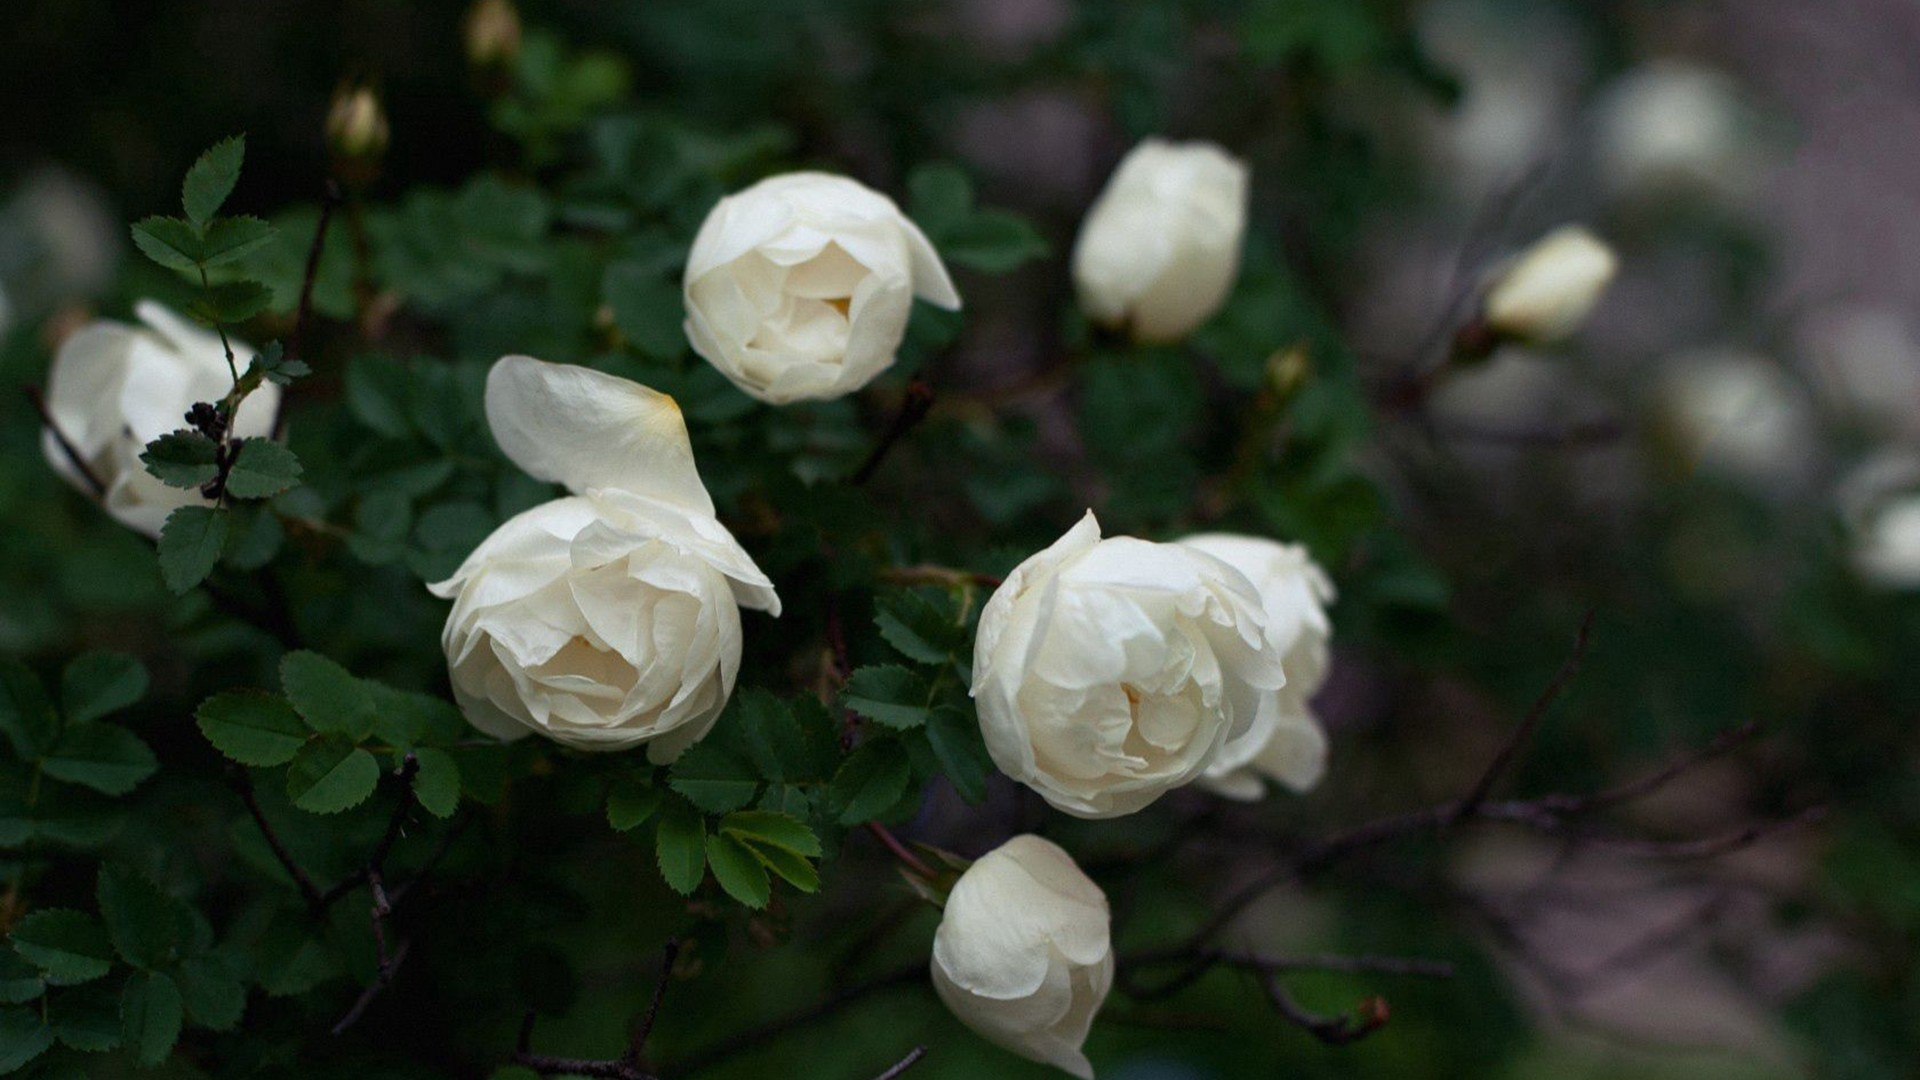 White Flowers with leaves in blur background HD flowers Wallpaper